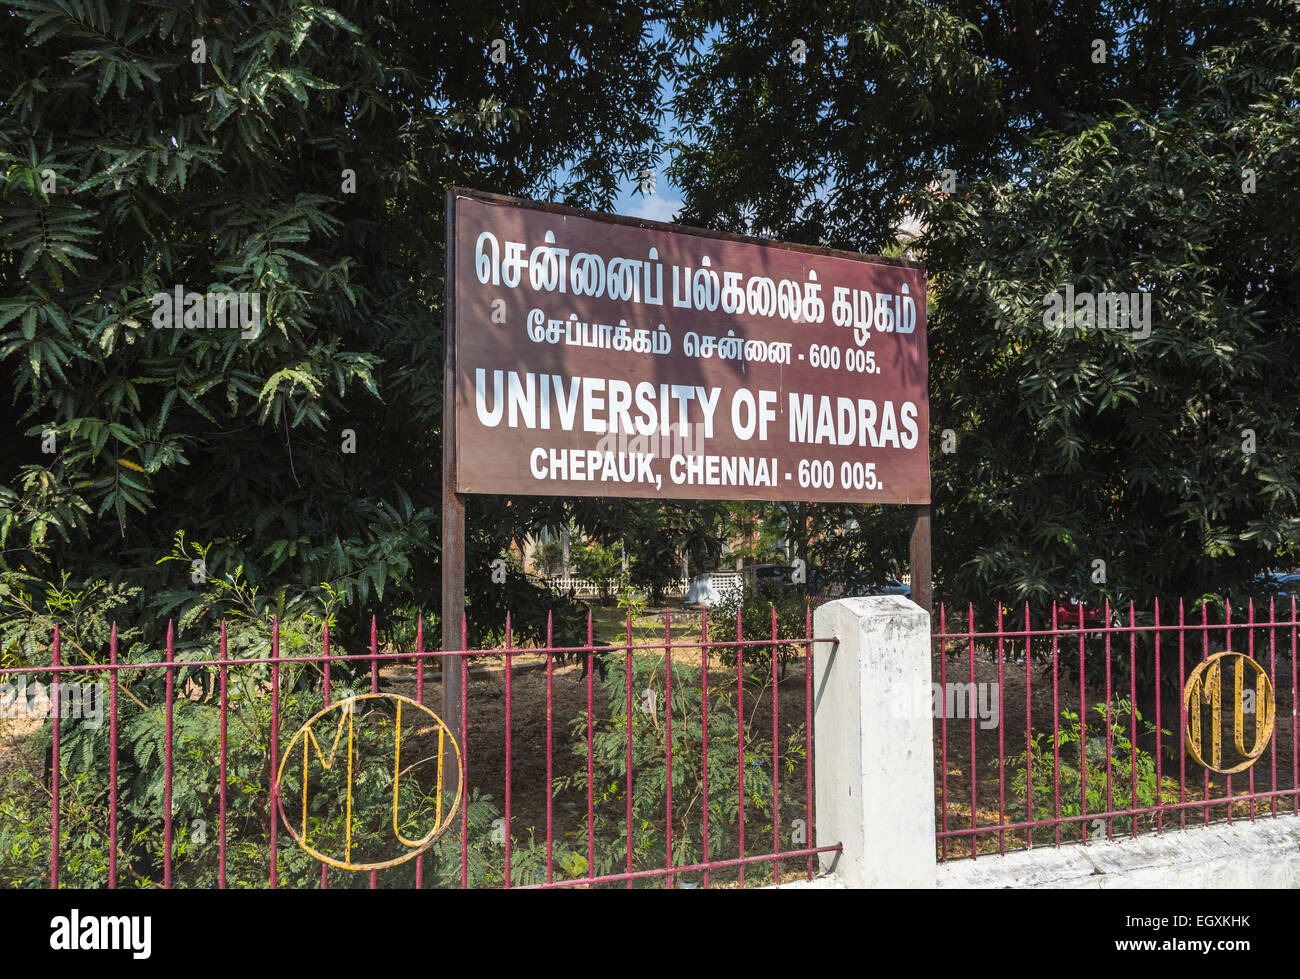 Indian graduate level higher education: Name sign at the University of Madras, Chennai, Tamil Nadu, southern India - Stock Image